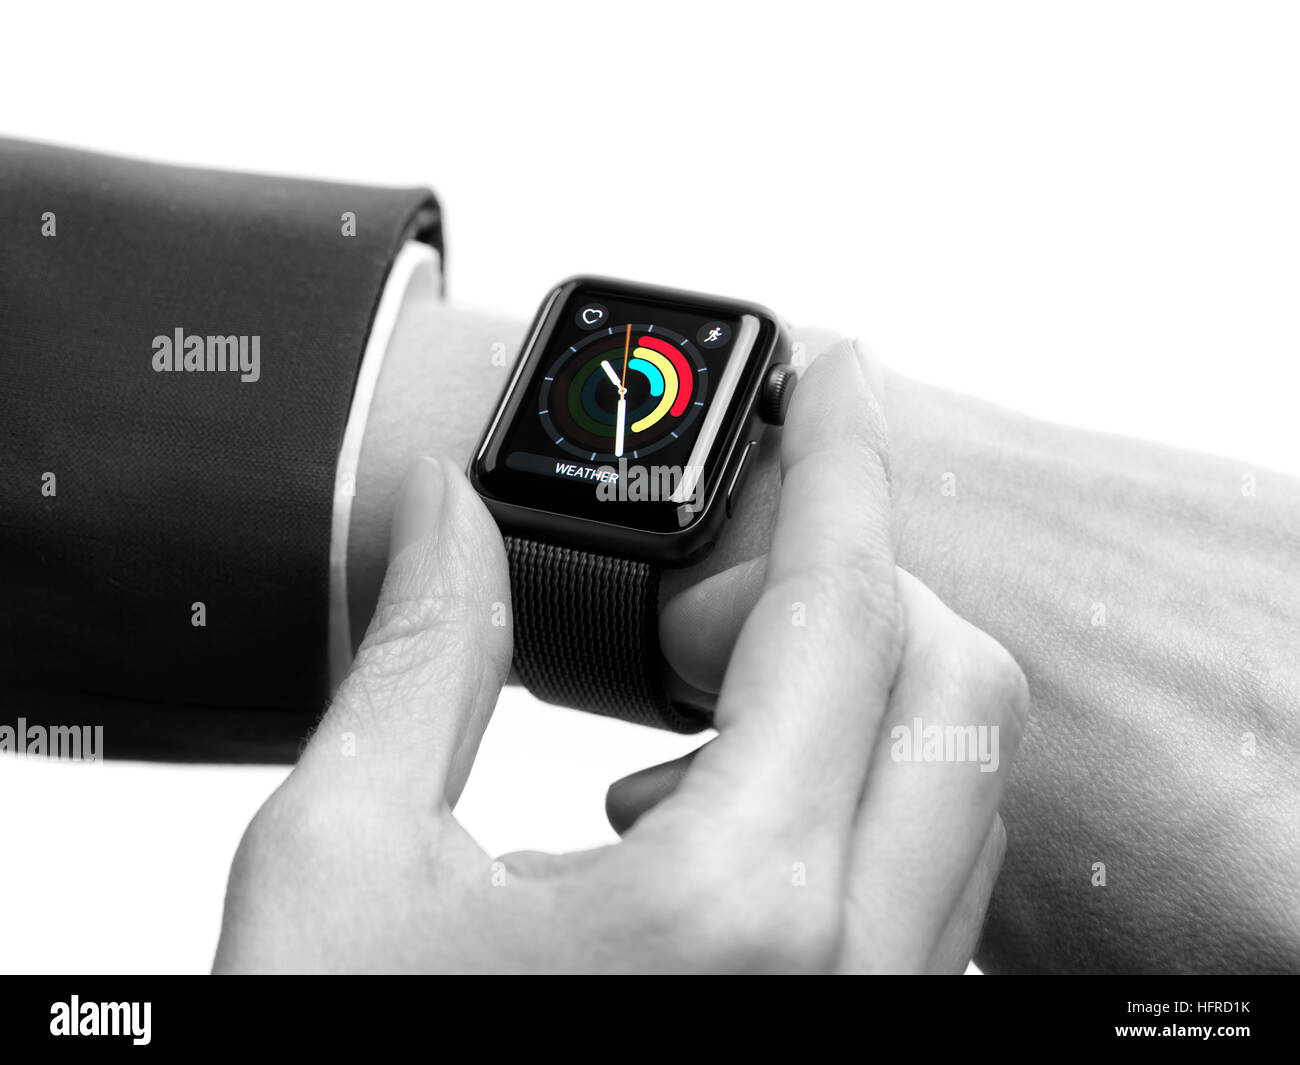 Woman hand with Apple Watch, smartwatch on her wrist, displaying daily activity and exercise - Stock Image